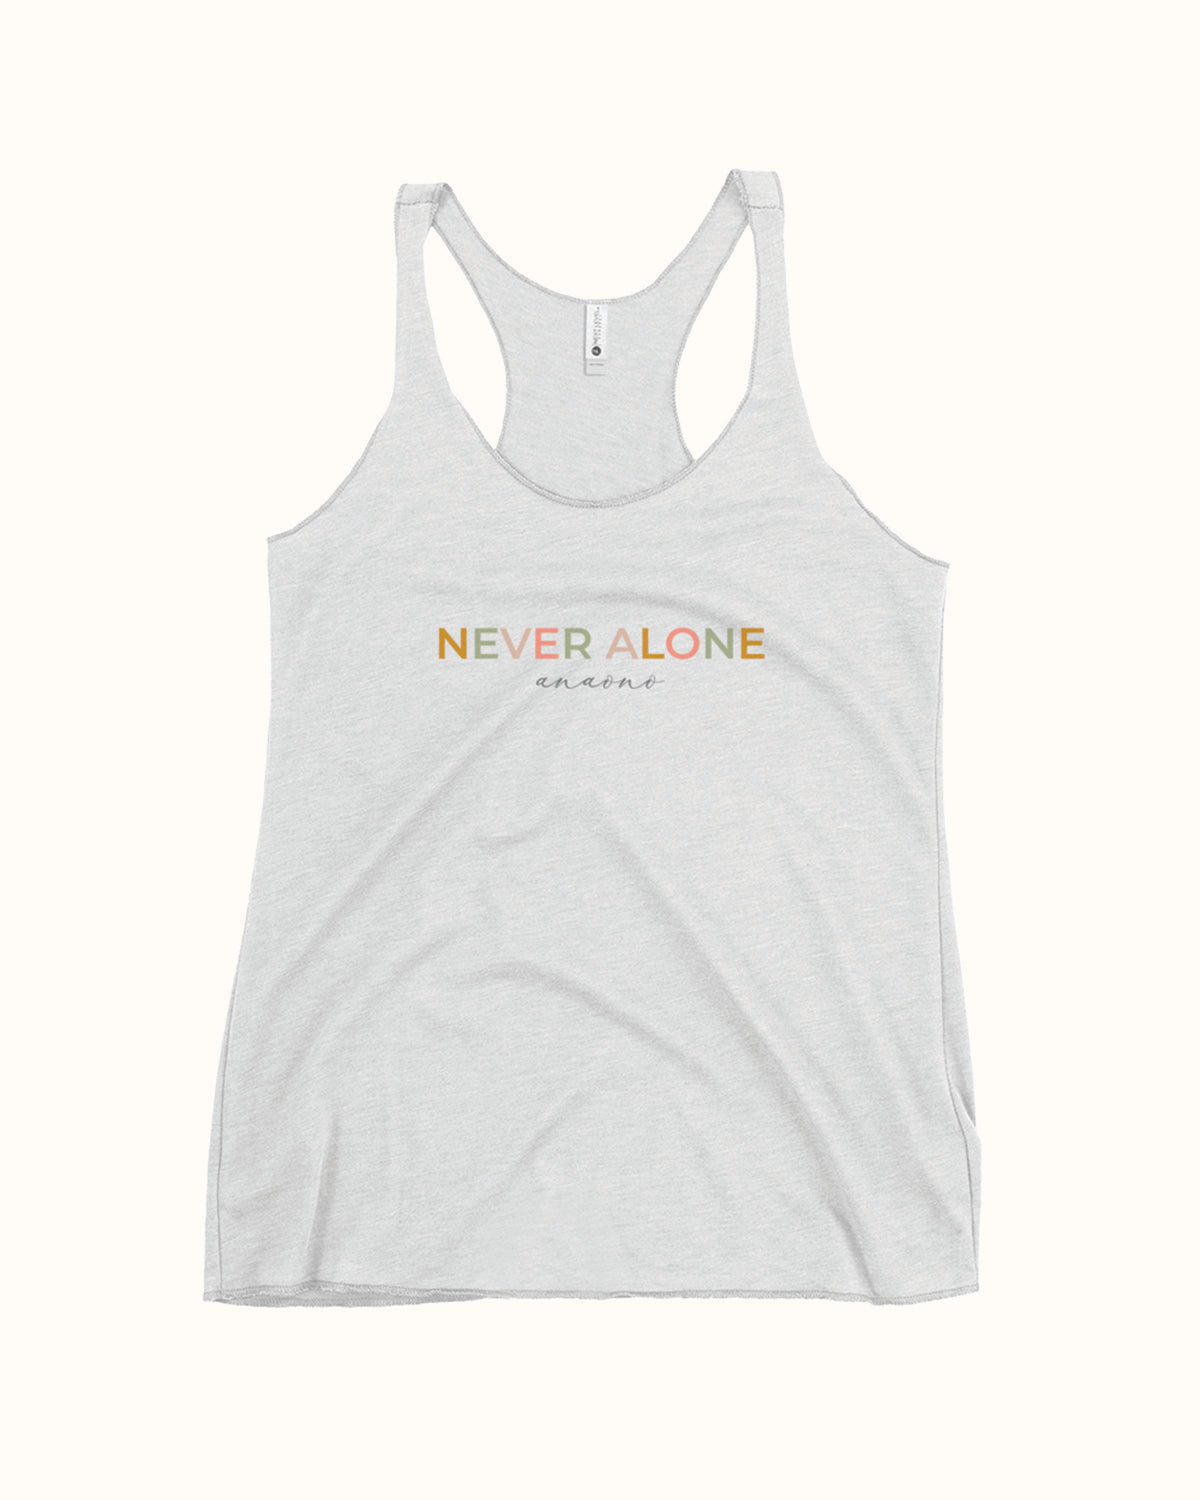 White, limited edition racerback tank with Never Alone® AnaOno spelt across chest in multi color.